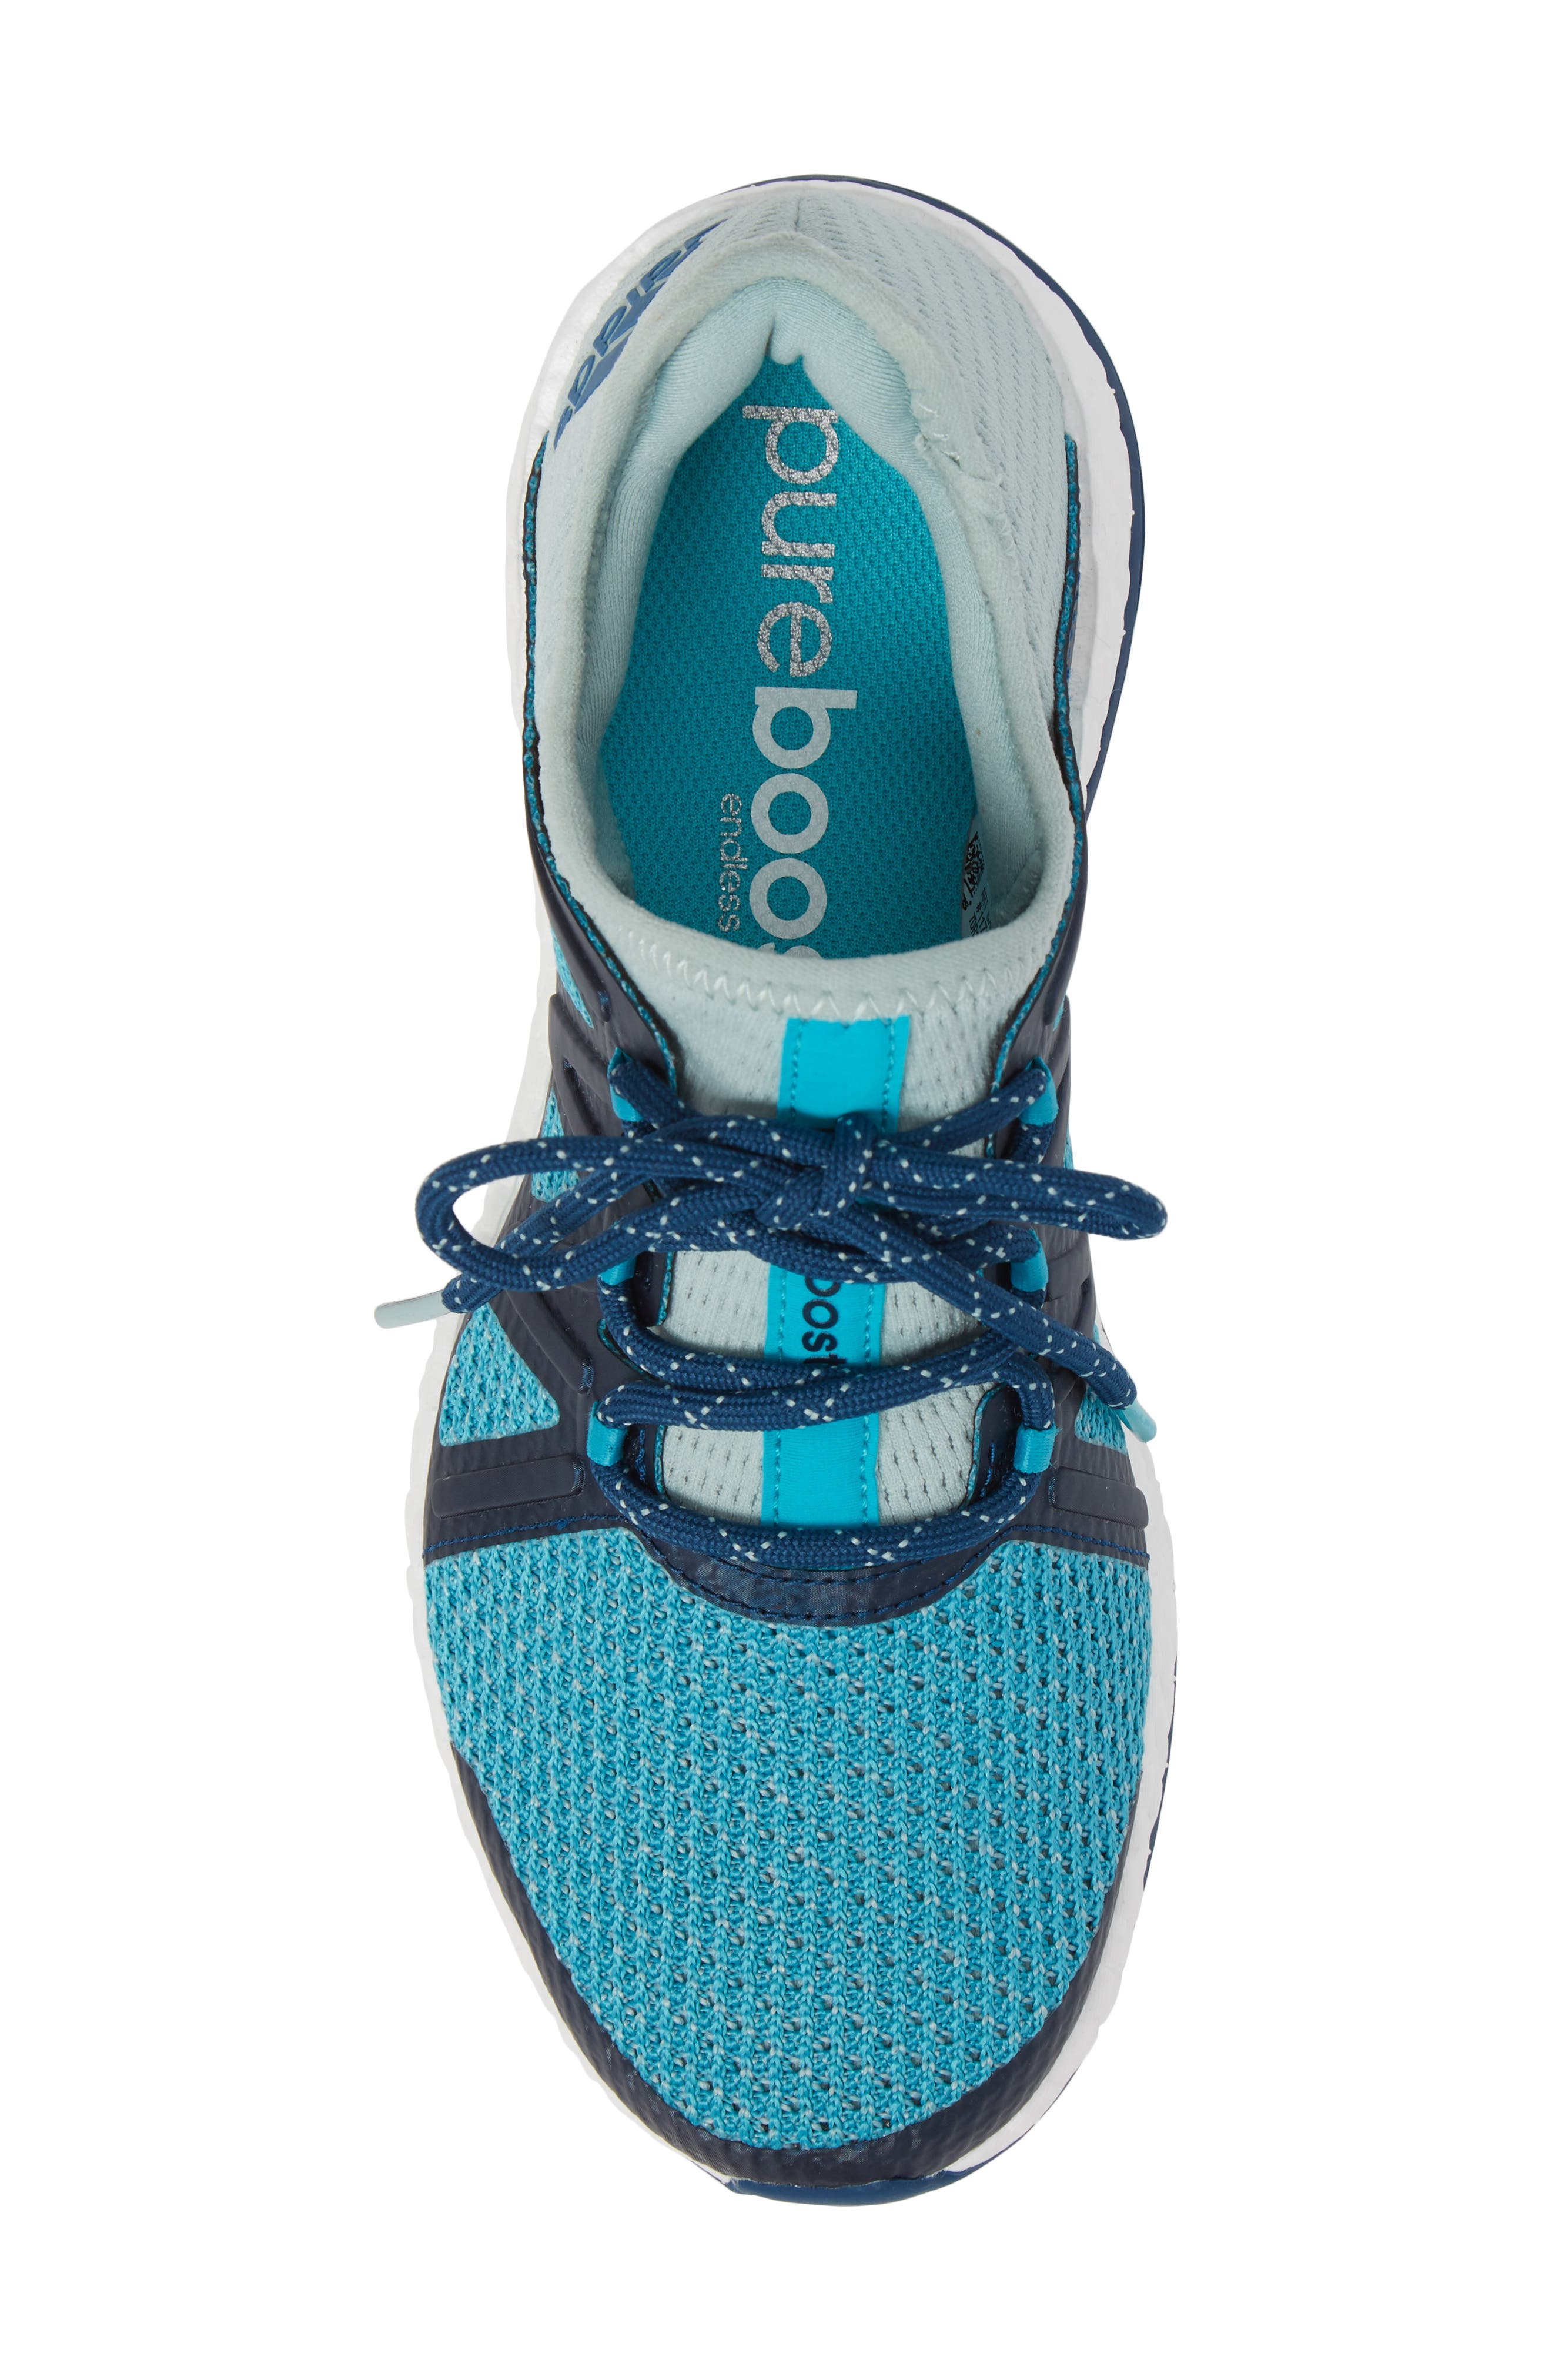 PureBOOST Xpose Running Shoe,                             Alternate thumbnail 3, color,                             Tactile Green/ Energy Blue